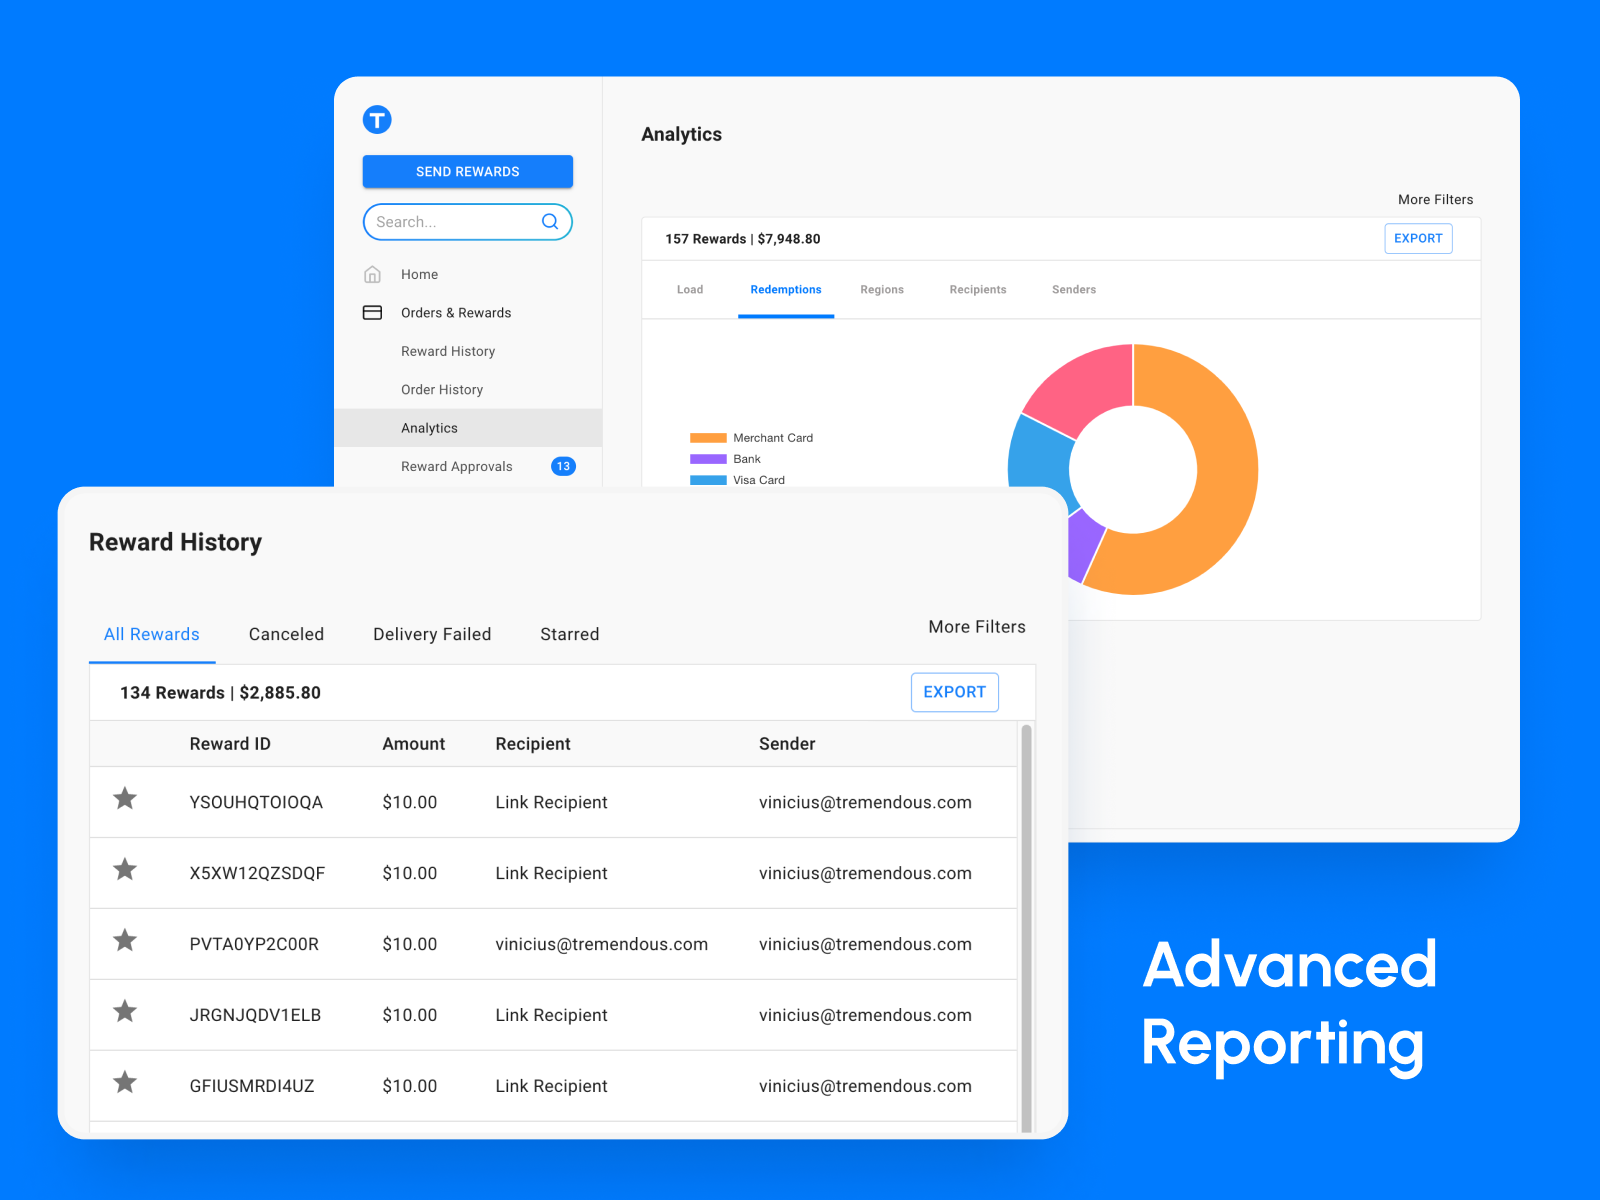 Visualize the preferred redemption options to optimize your campaigns.